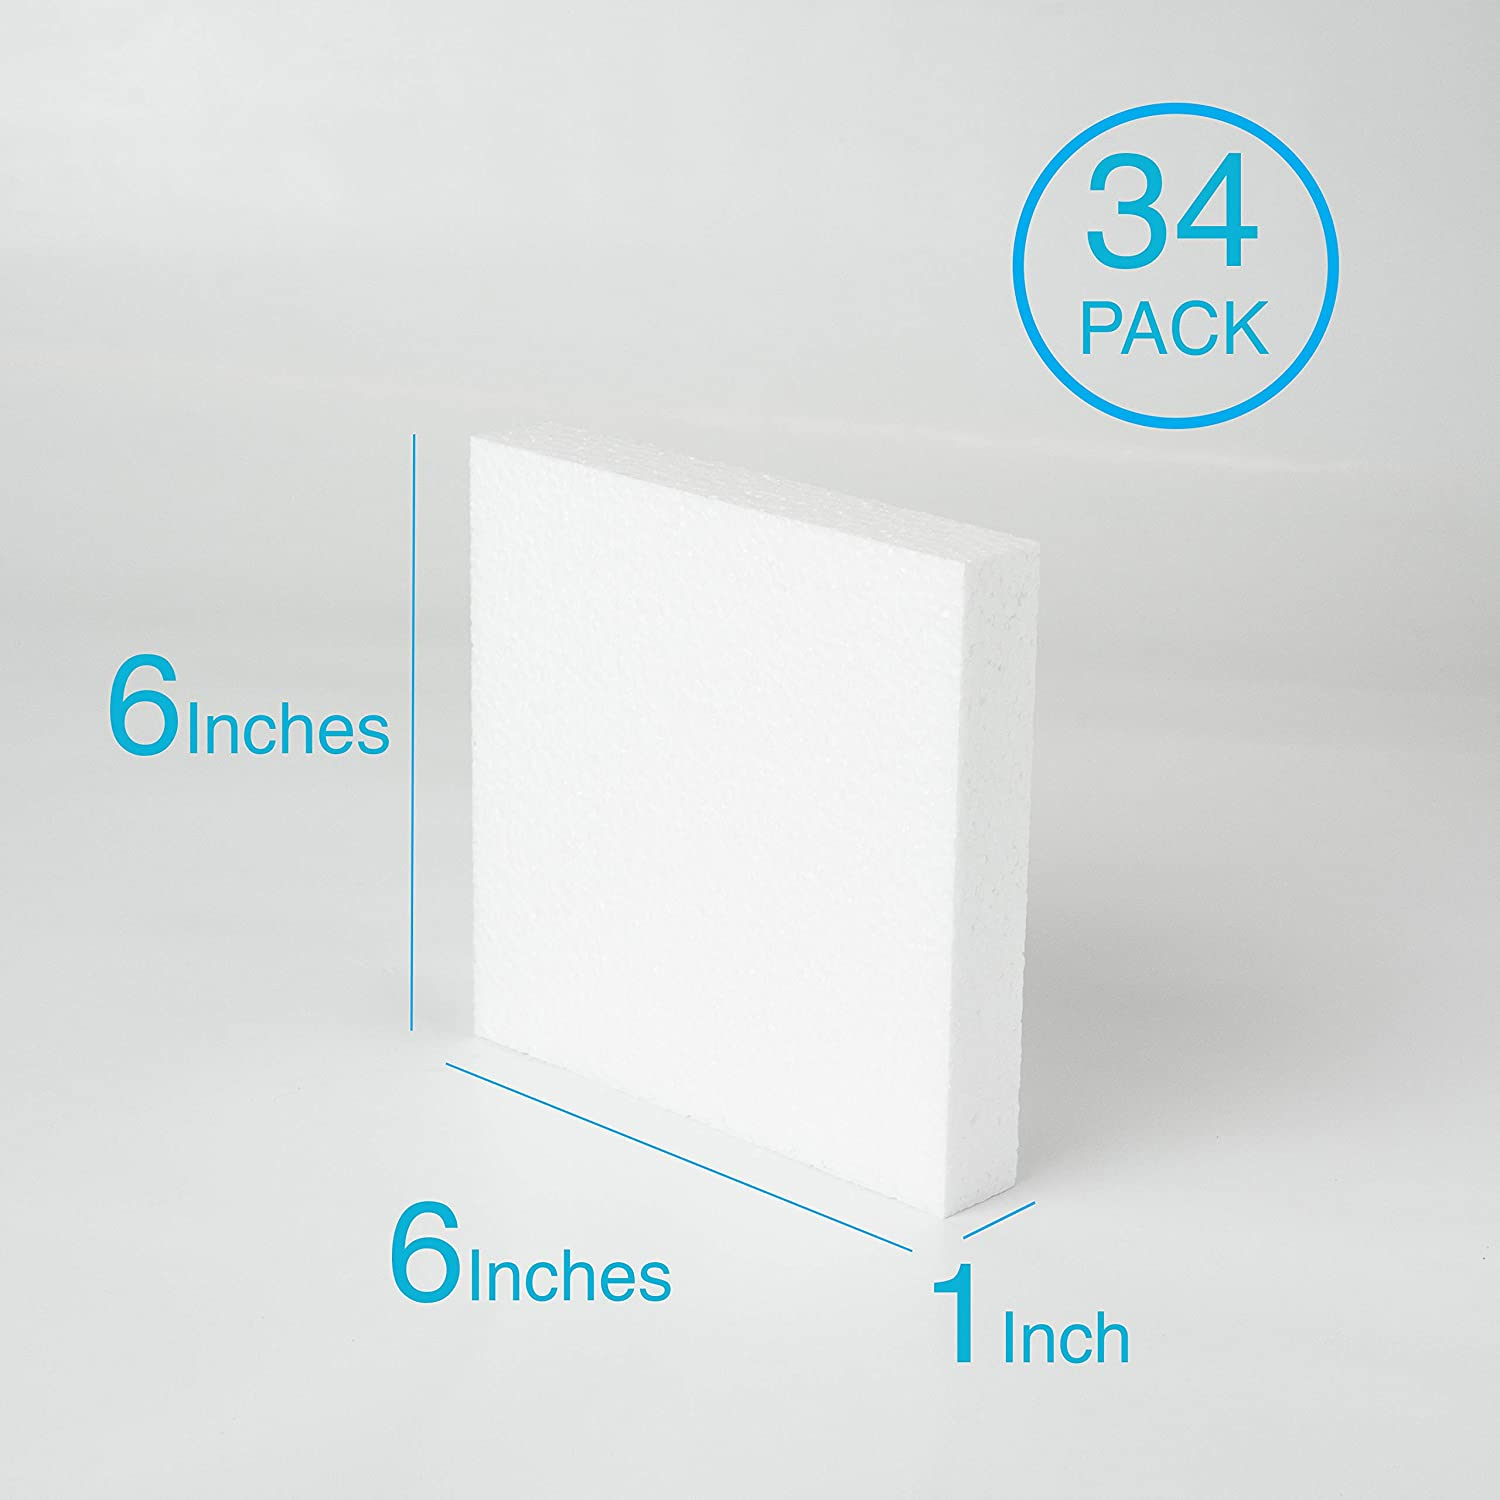 12 Pack Silverlake Craft Foam Block Art Projects and Floral Arrangements 12 Pack of 6x6x1 EPS Polystyrene Styrofoam Cubes for Crafting Modeling Sculpting Block DIY School /& Home Art Projects